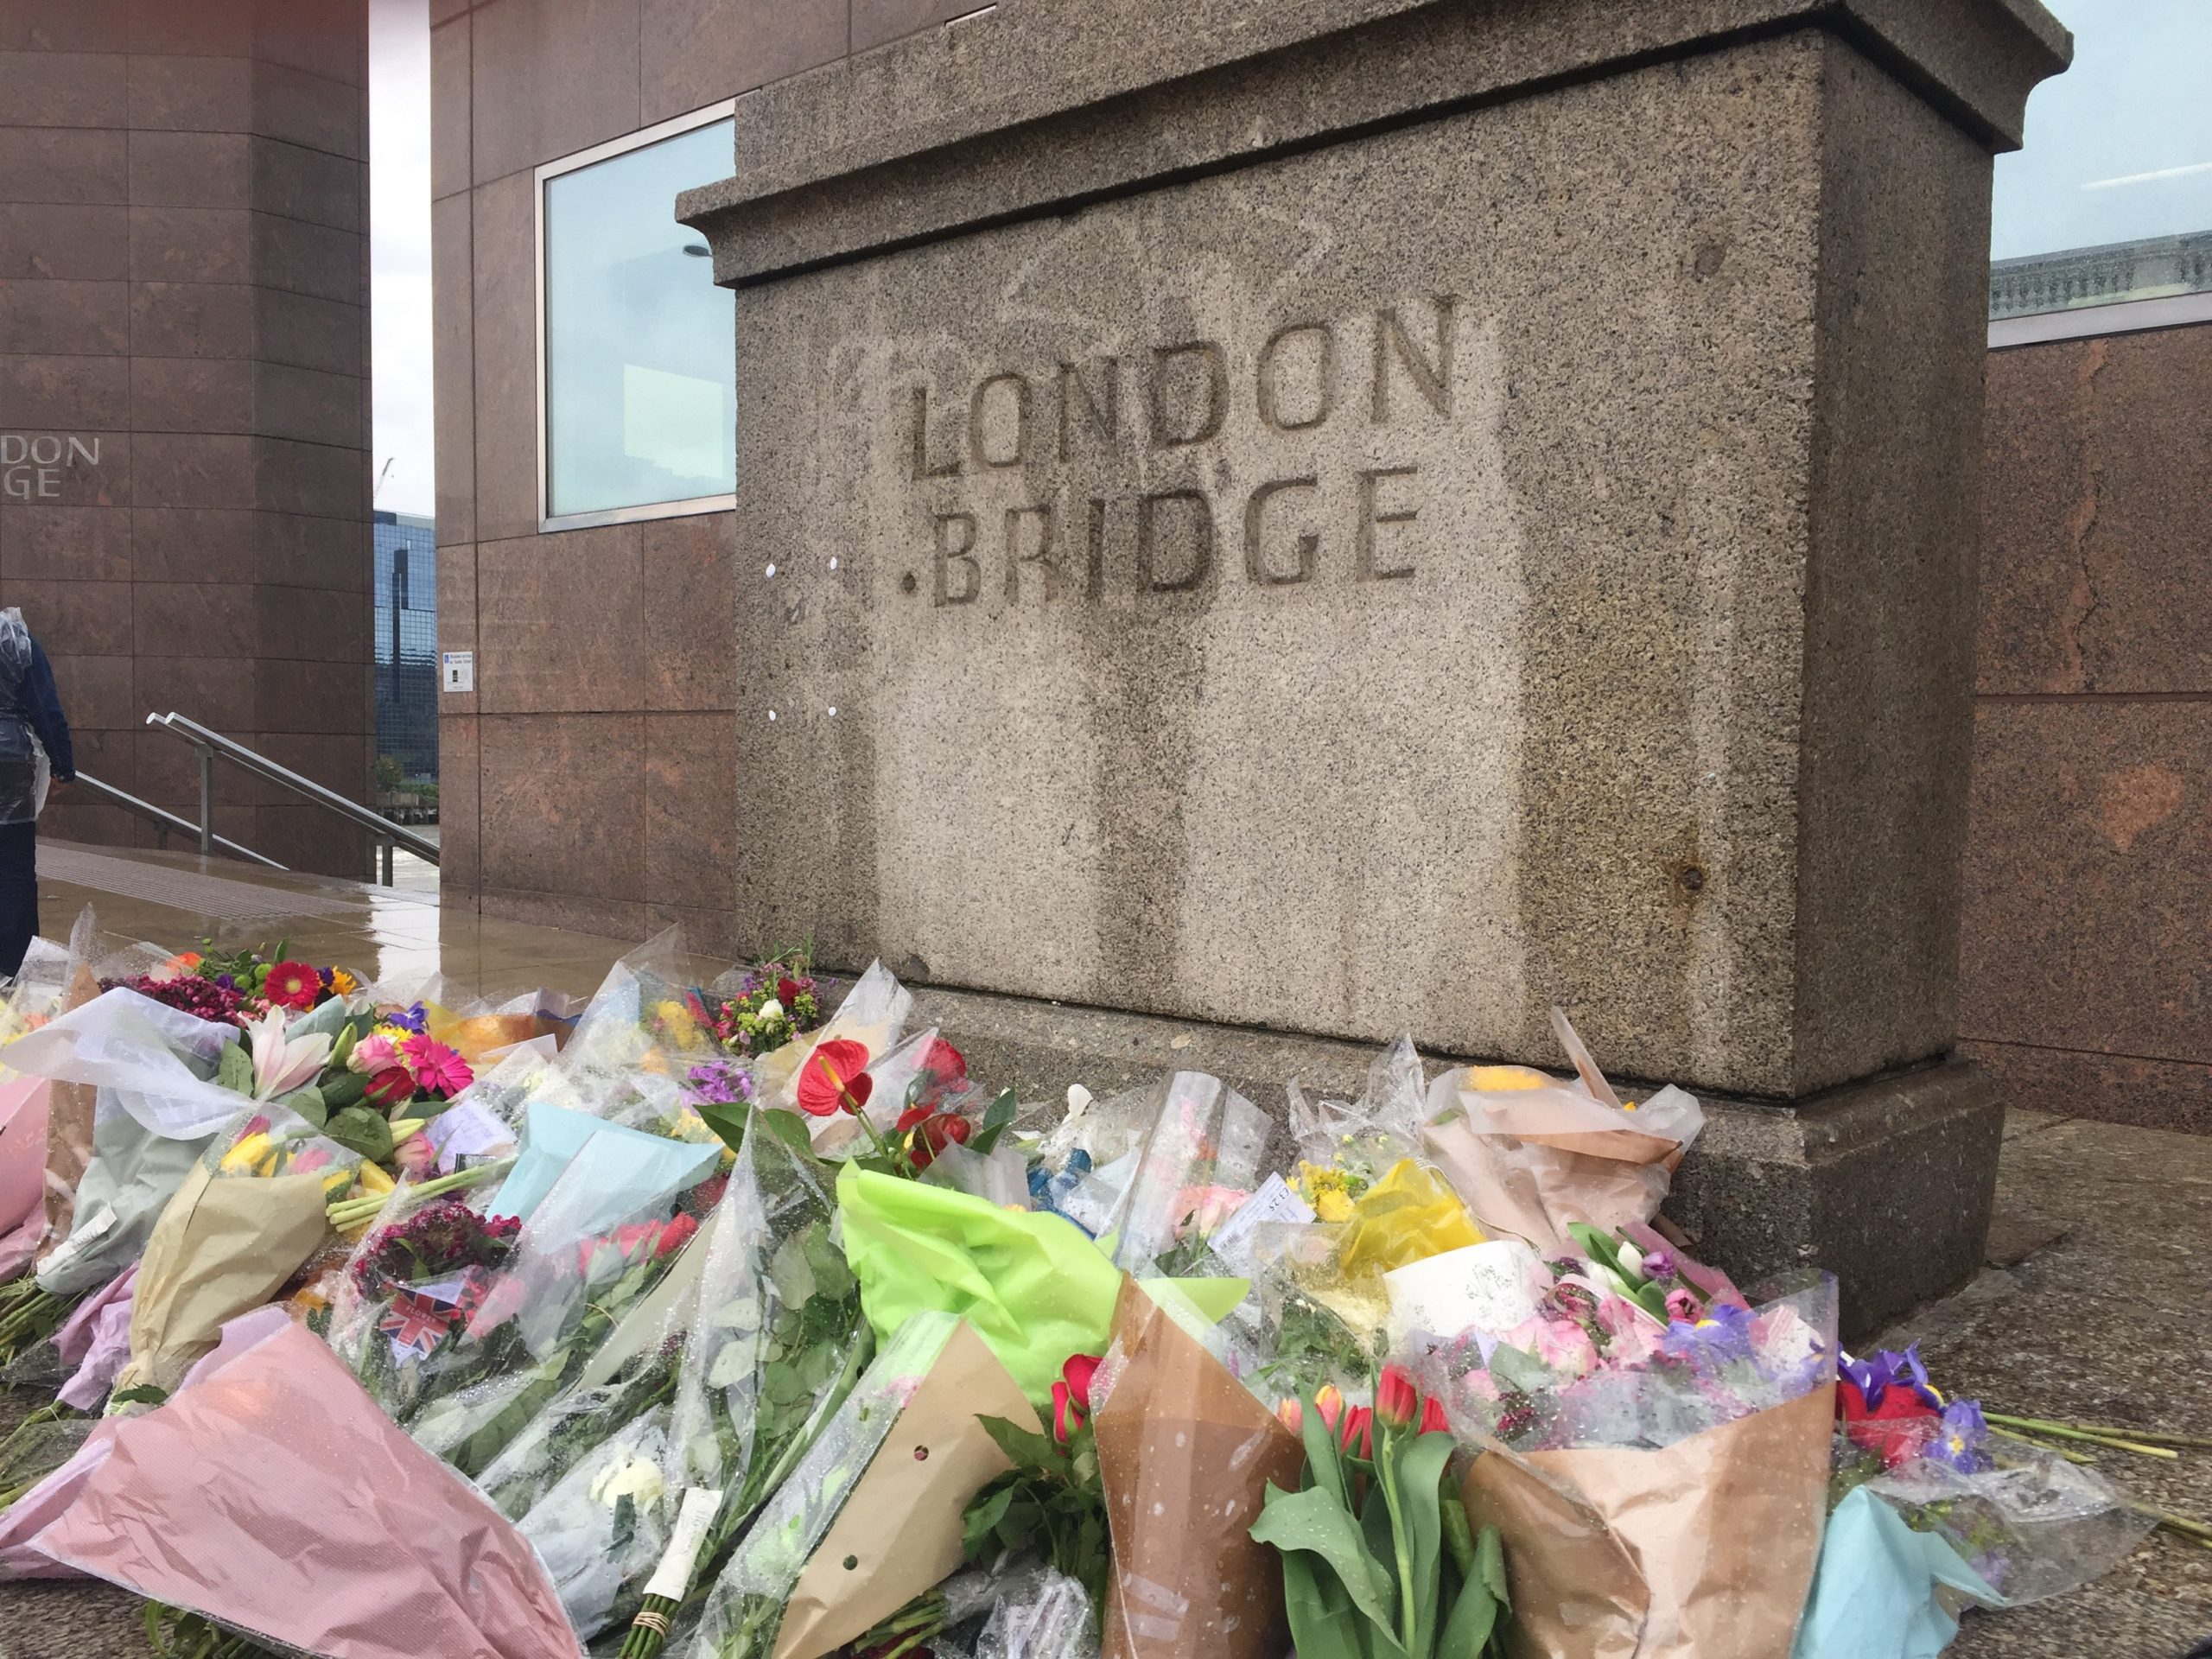 Flowers left on the London Bridge in tribute to the victims of the June 2017 terrorist attack. Photo courtesy of Matt Brown.